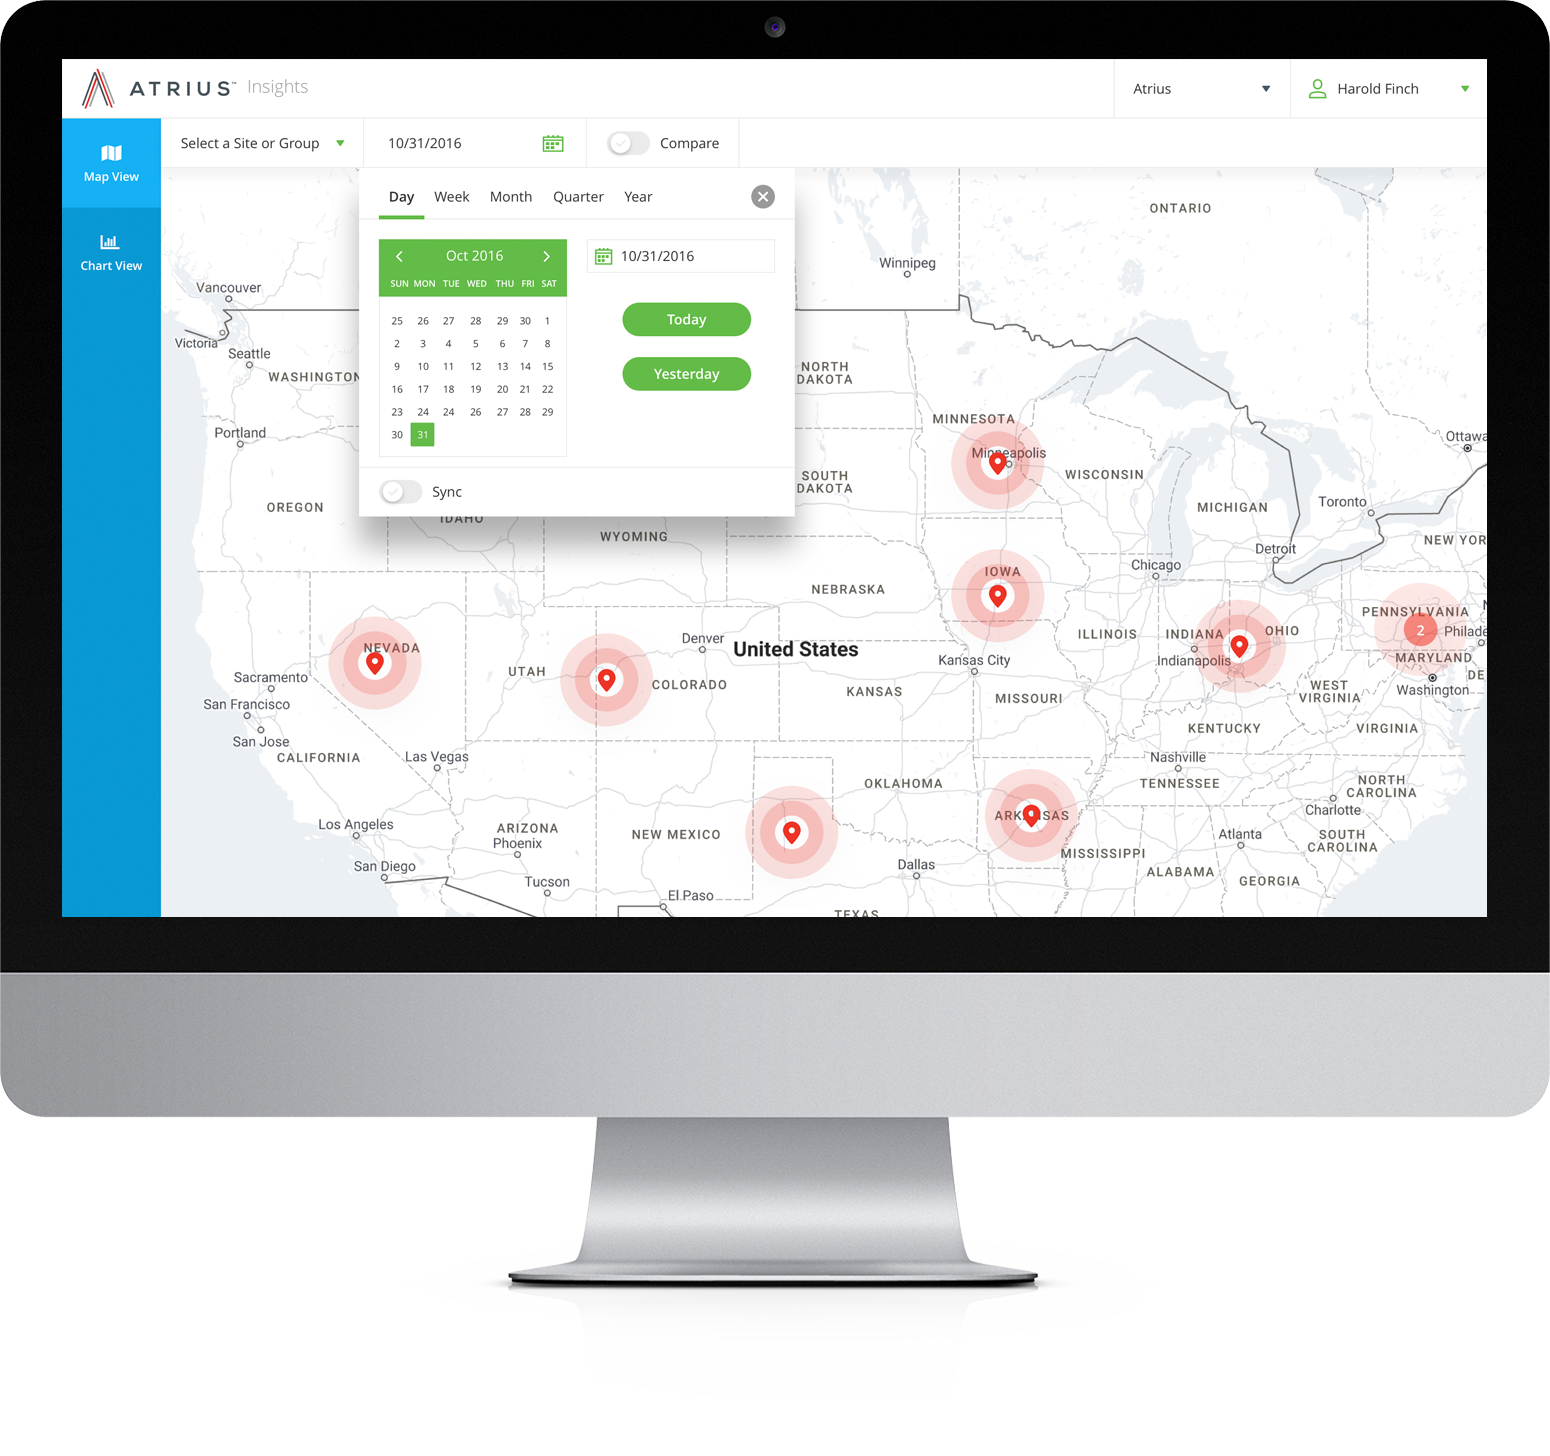 Atrius-Insights-MapView.png